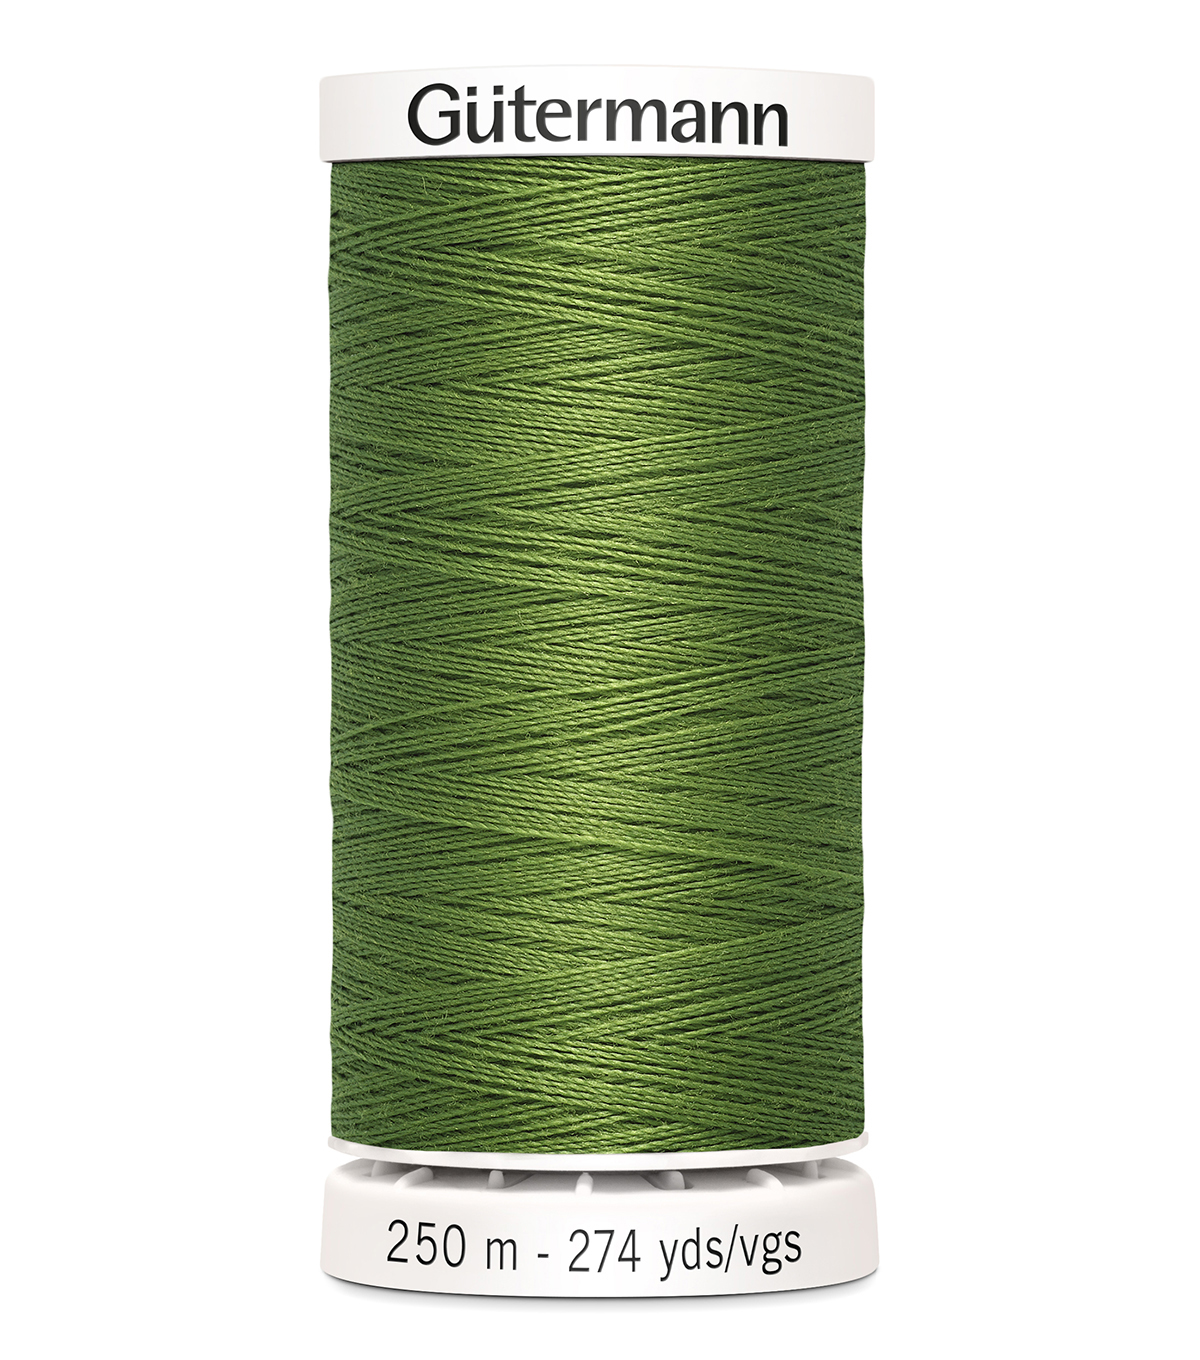 Gutermann Sew-All Thread 273Yds-(600 & 700 series) Cool Tones , Moss Green #776